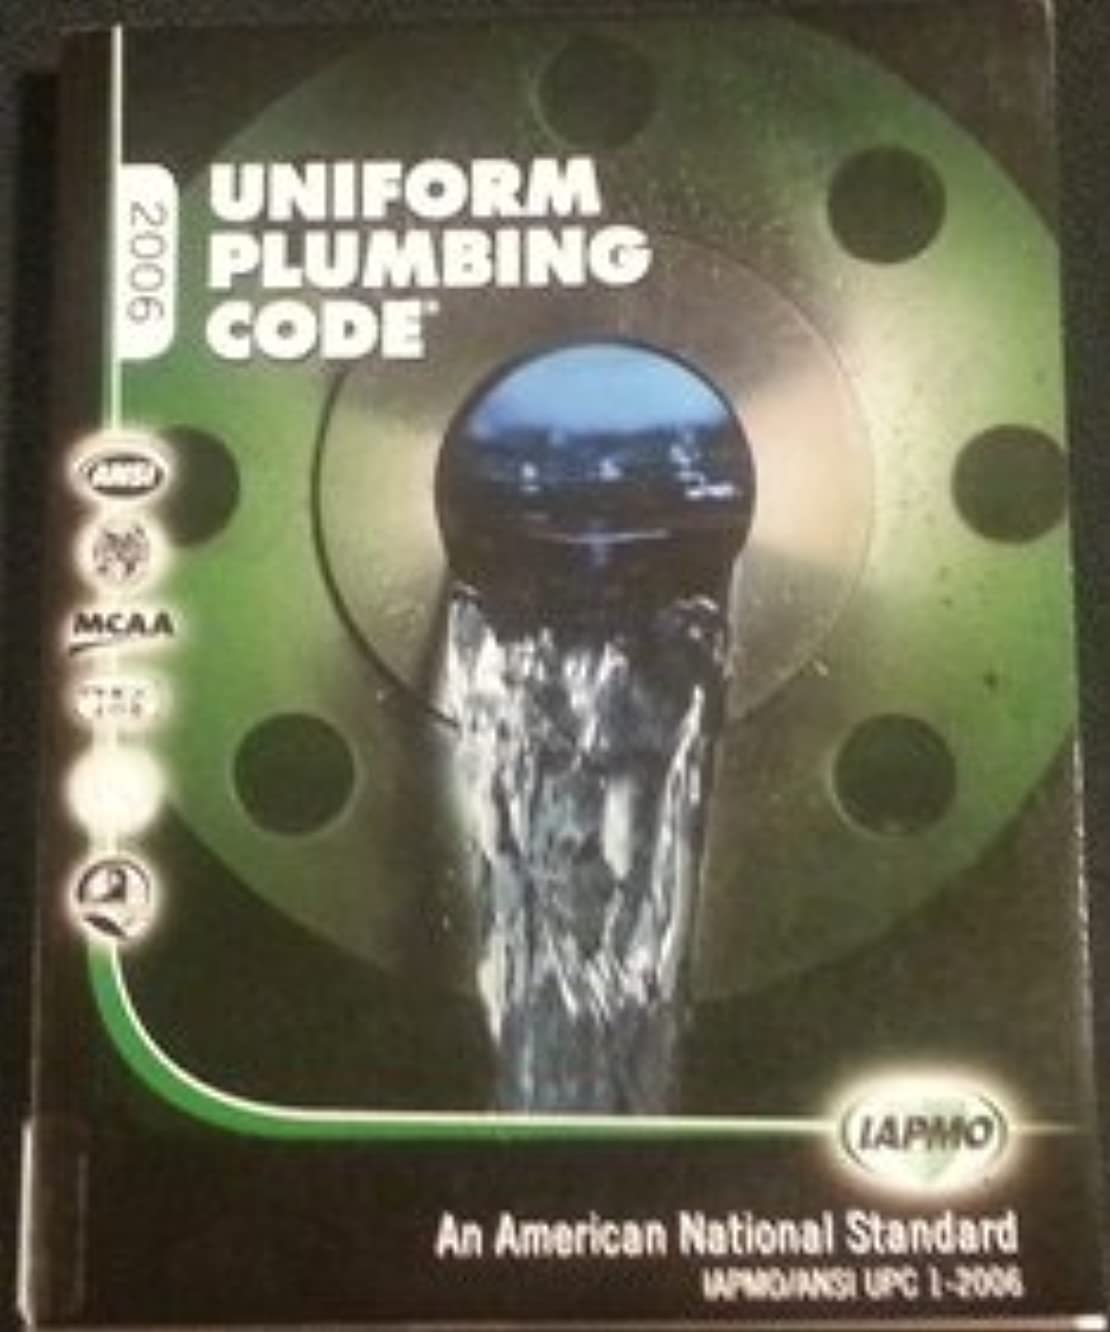 Uniform Plumbing Code, 2006 Edition (Softcover Version)